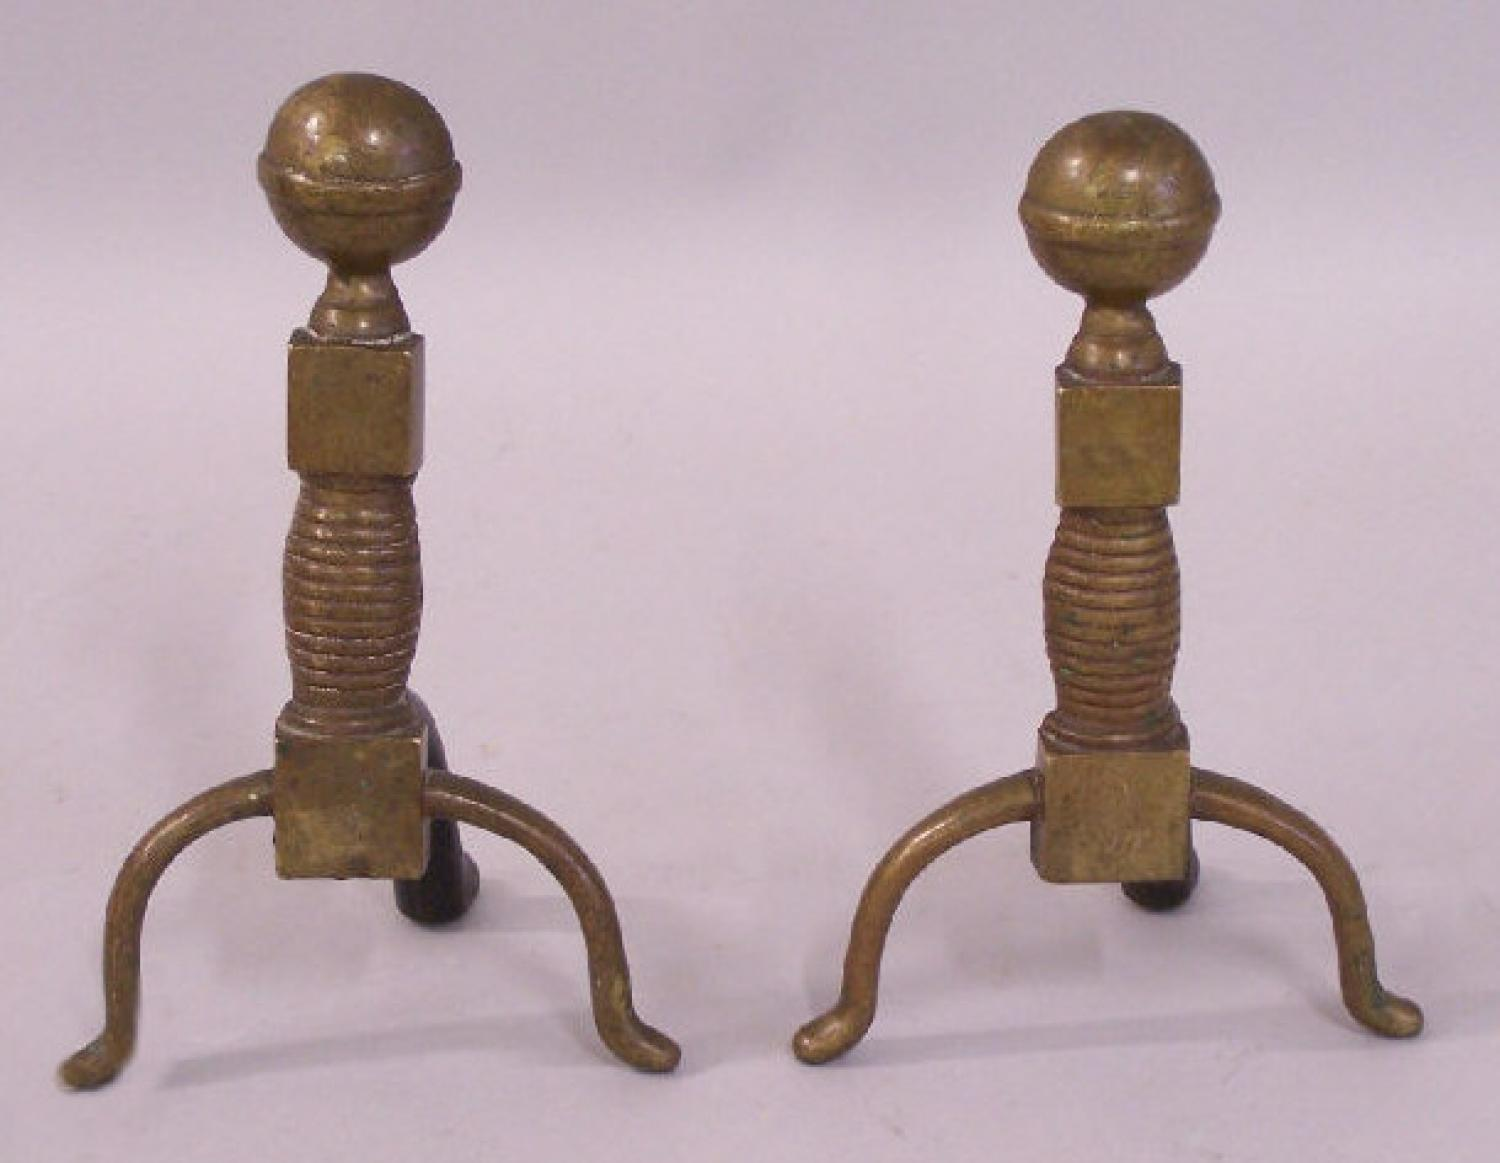 Antique diminutive solid brass andirons c1820 to 1840